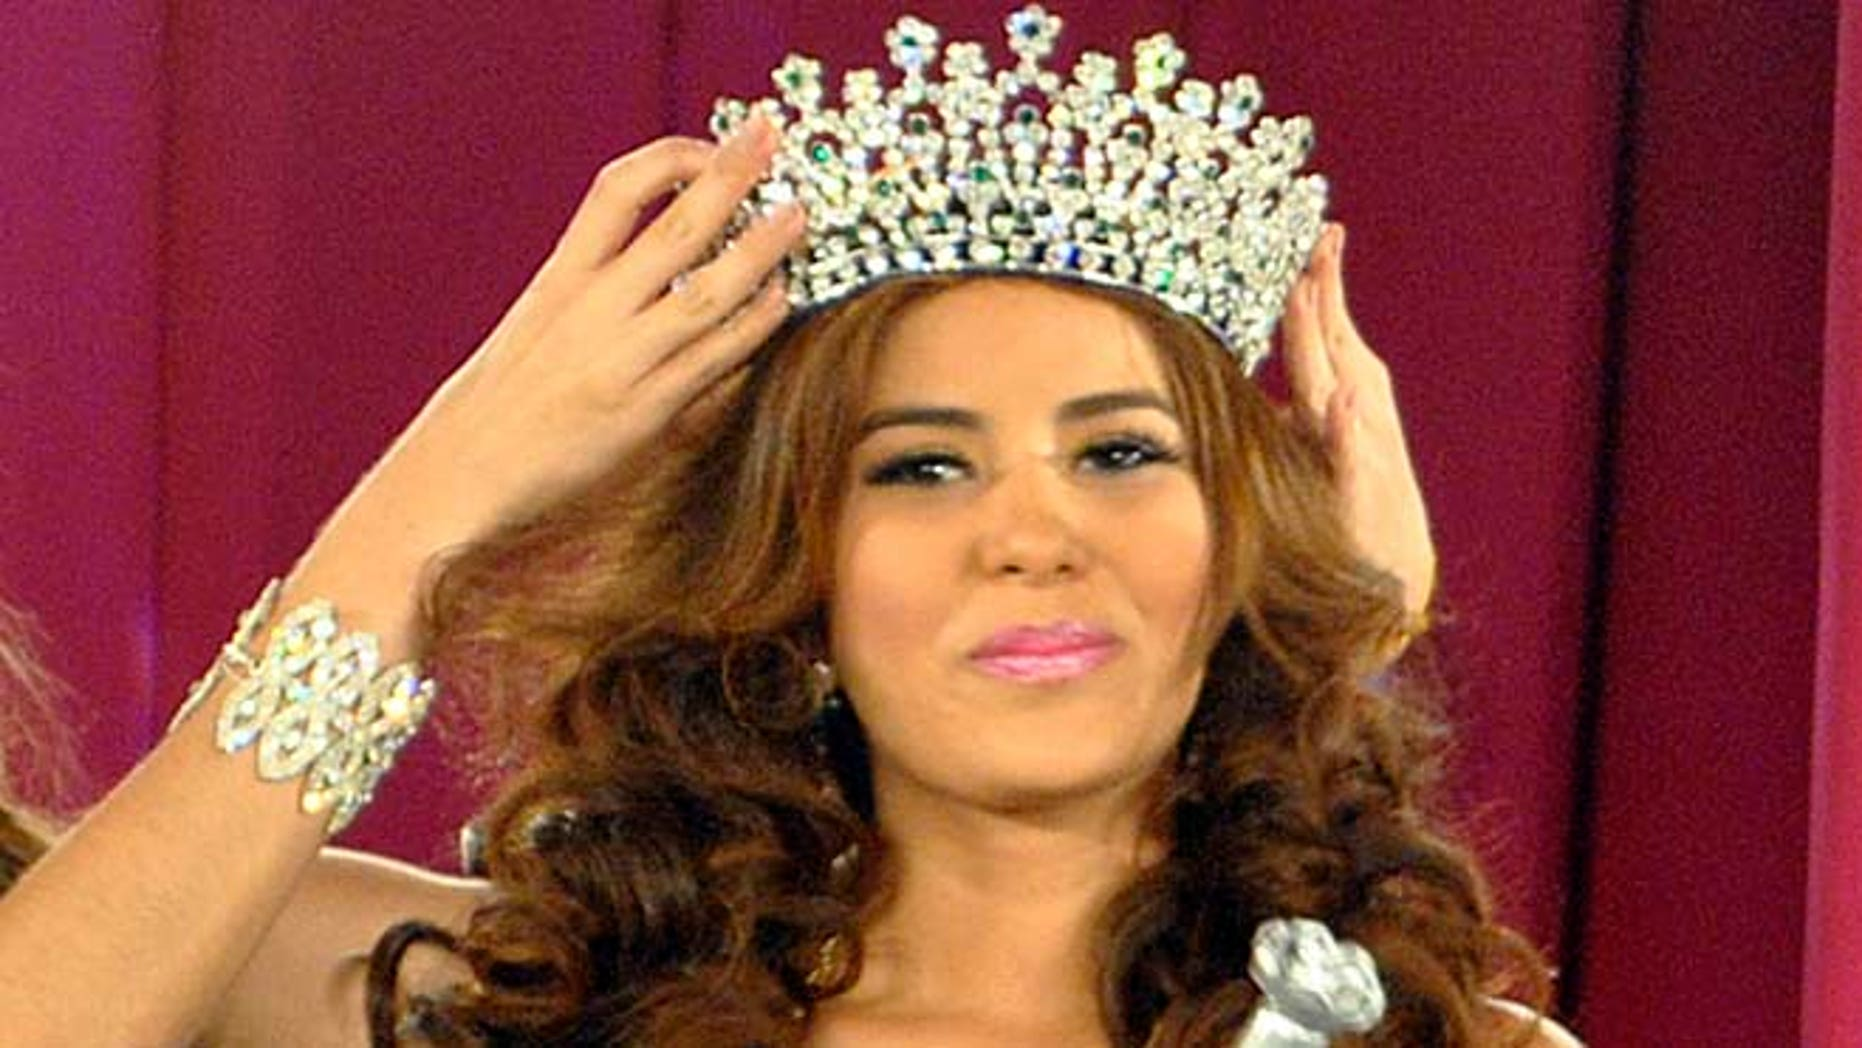 April 26, 2014: In this photo, Maria Jose Alvarado is crowned the new Miss Honduras in San Pedro, Sula, Honduras. Alvarado, and her sister Sofia disappeared after attending a birthday party in Western Honduras on Thursday Nov. 13, but authorities were not notified until the weekend.  The 19-year-old beauty queen was expected to attend the Miss World pageant in Britain this December.